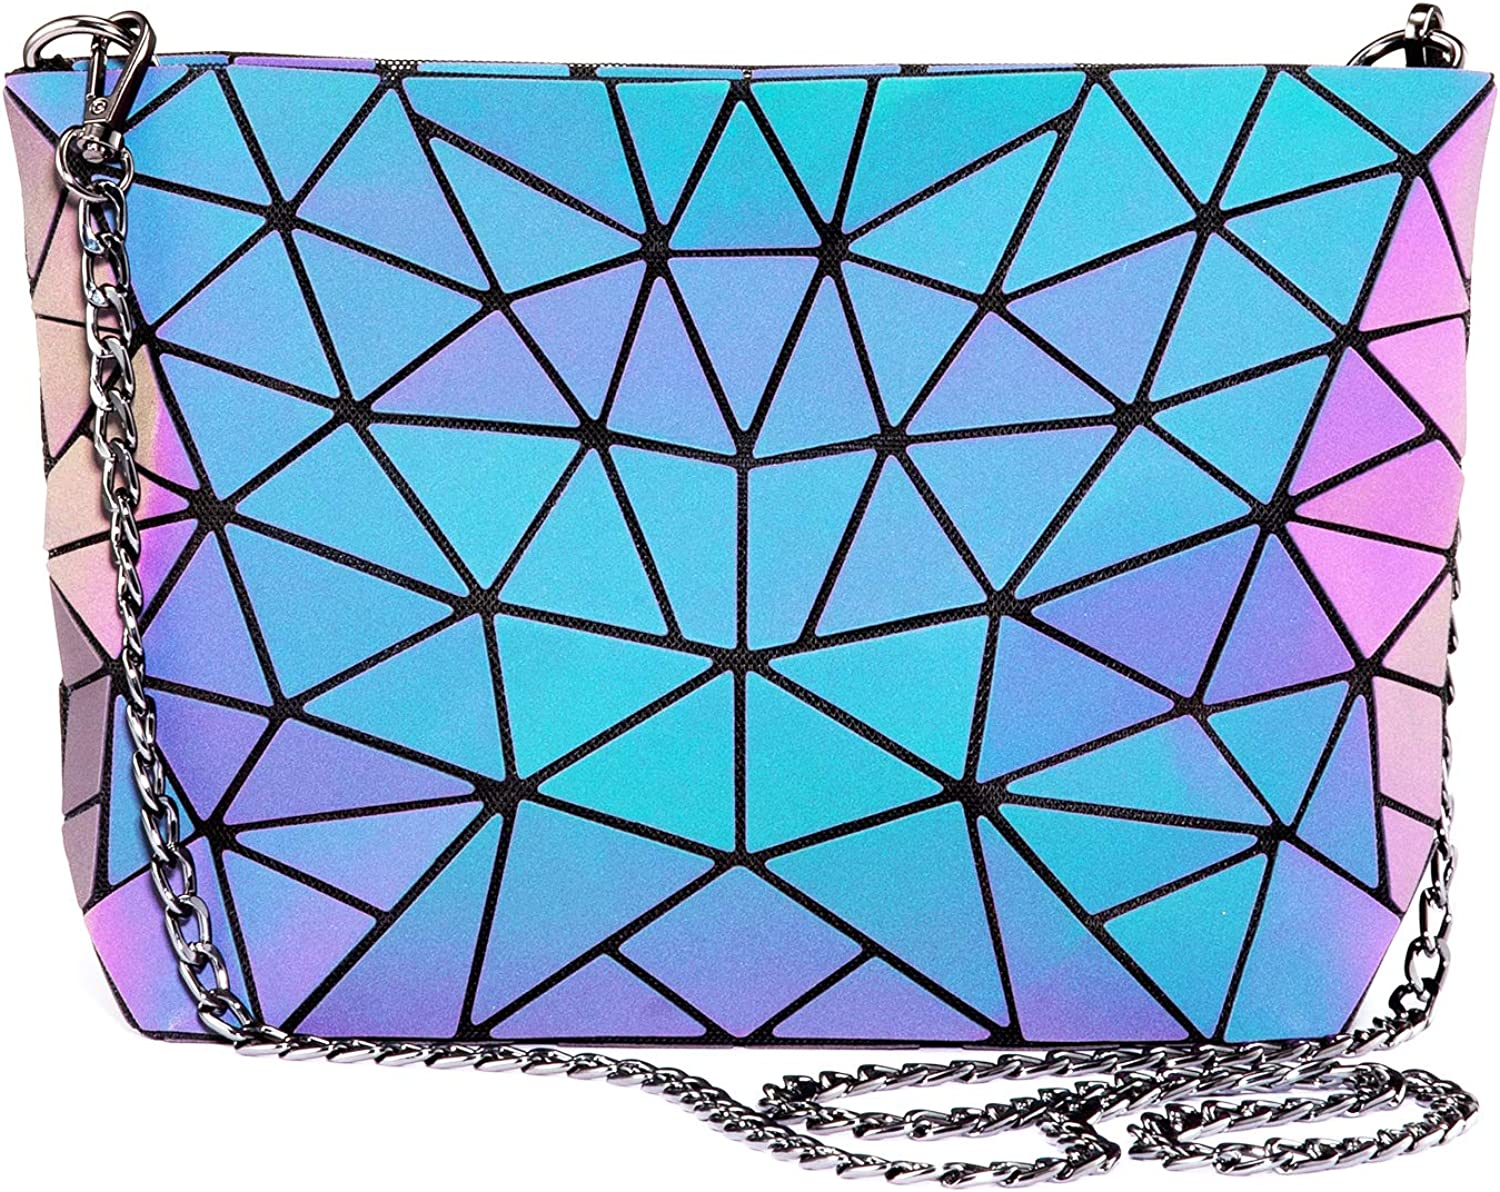 Geometric Luminous depot Now free shipping Purses and Handbags Ref for Holographic Women